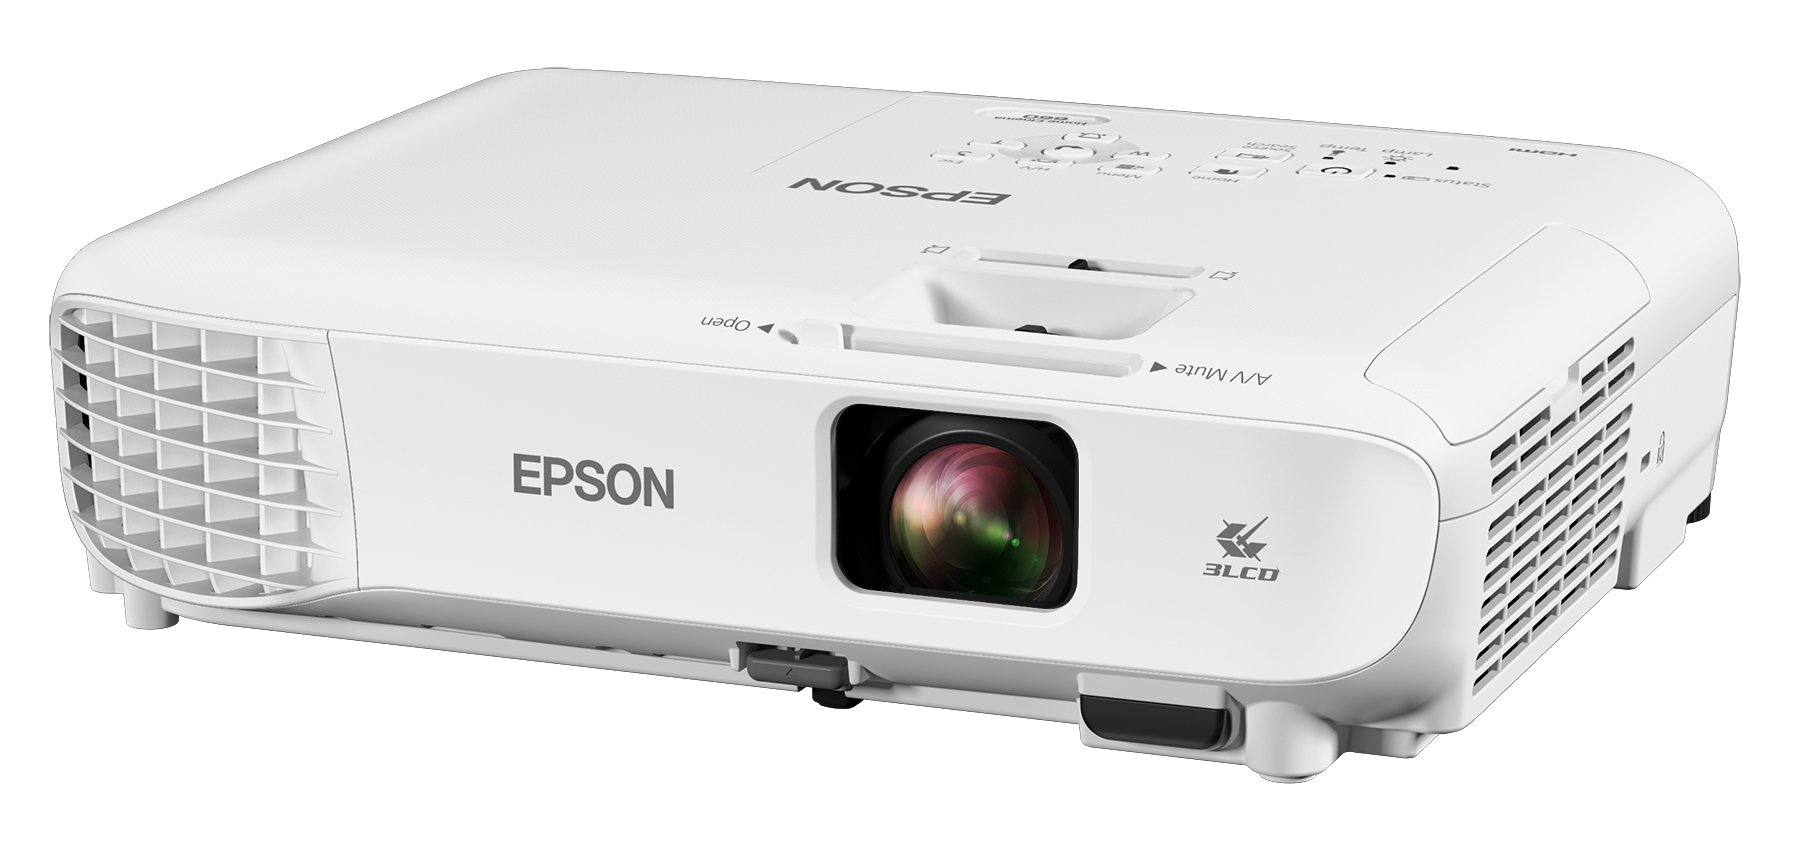 Epson Cinema lumens brightness projector